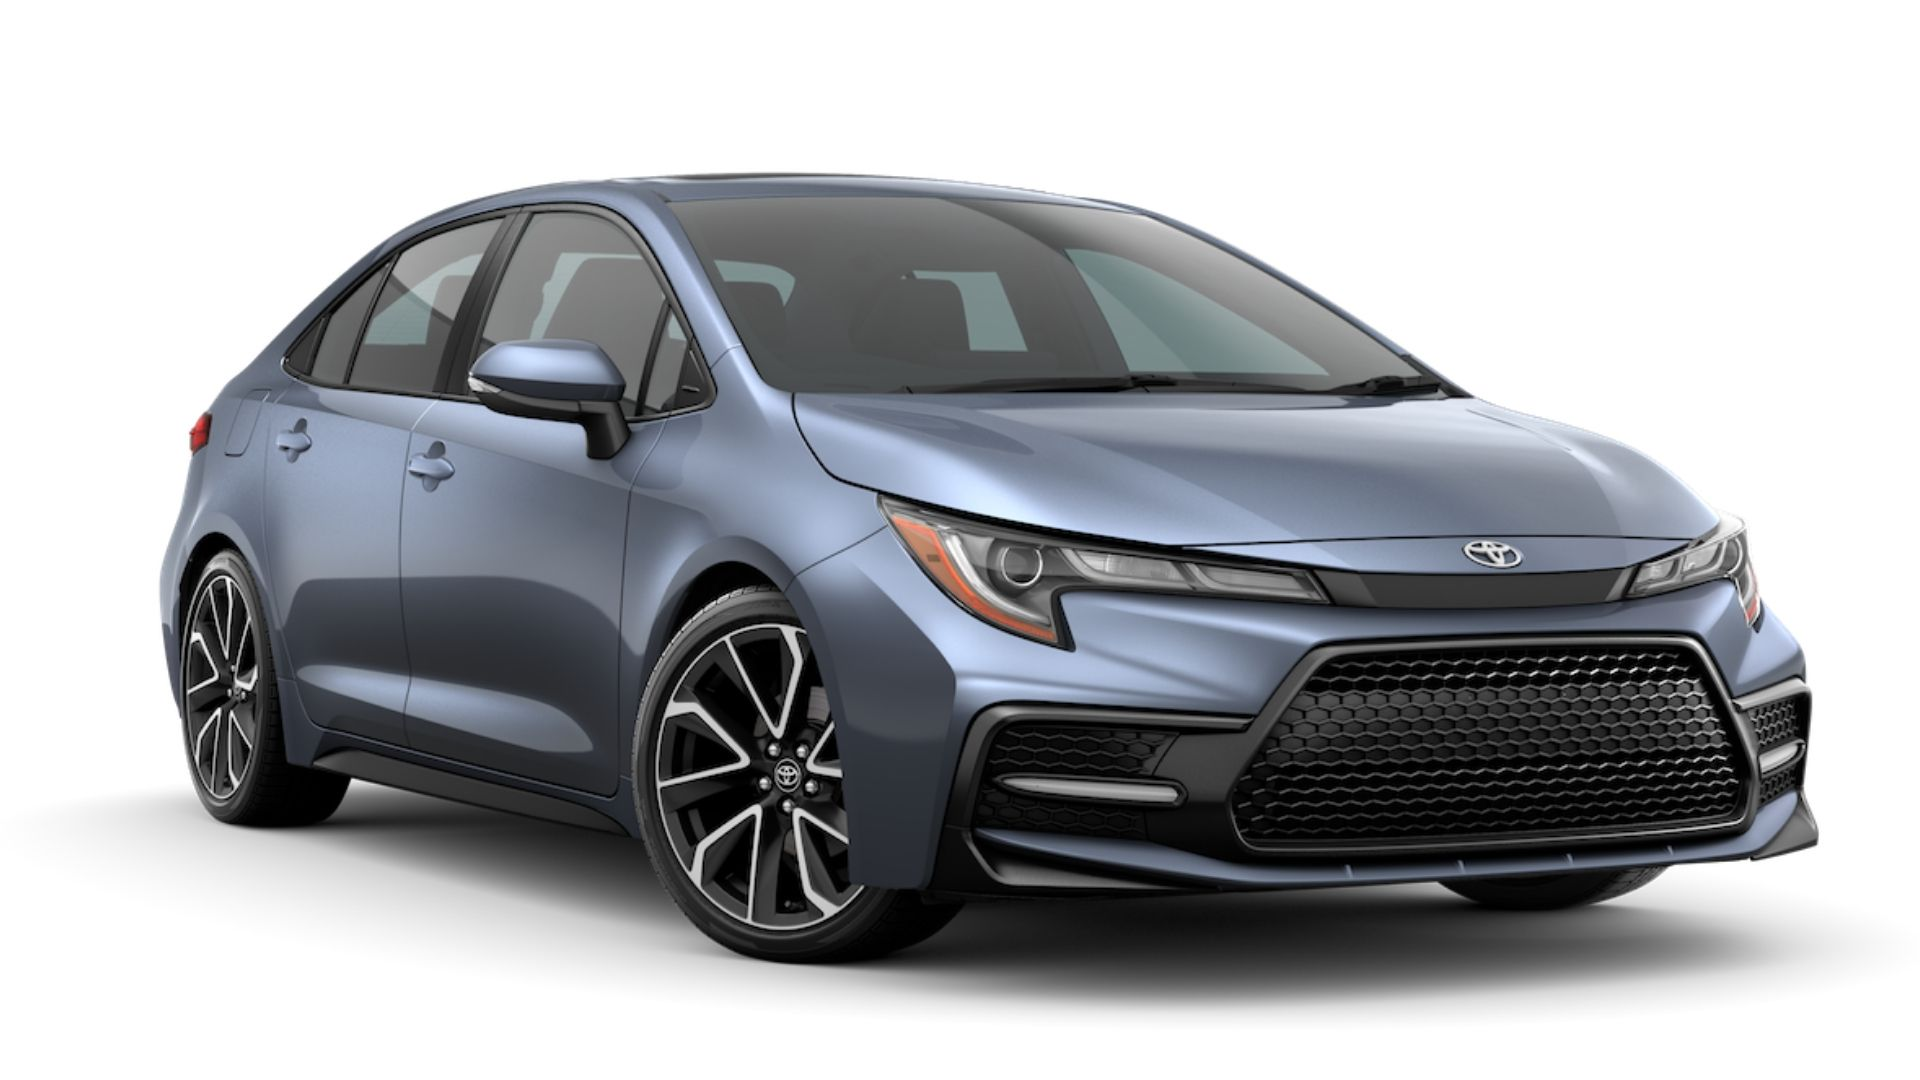 World's 10 Most Sold Cars In 2019 Include Corolla, Civic, CR-V, Camry